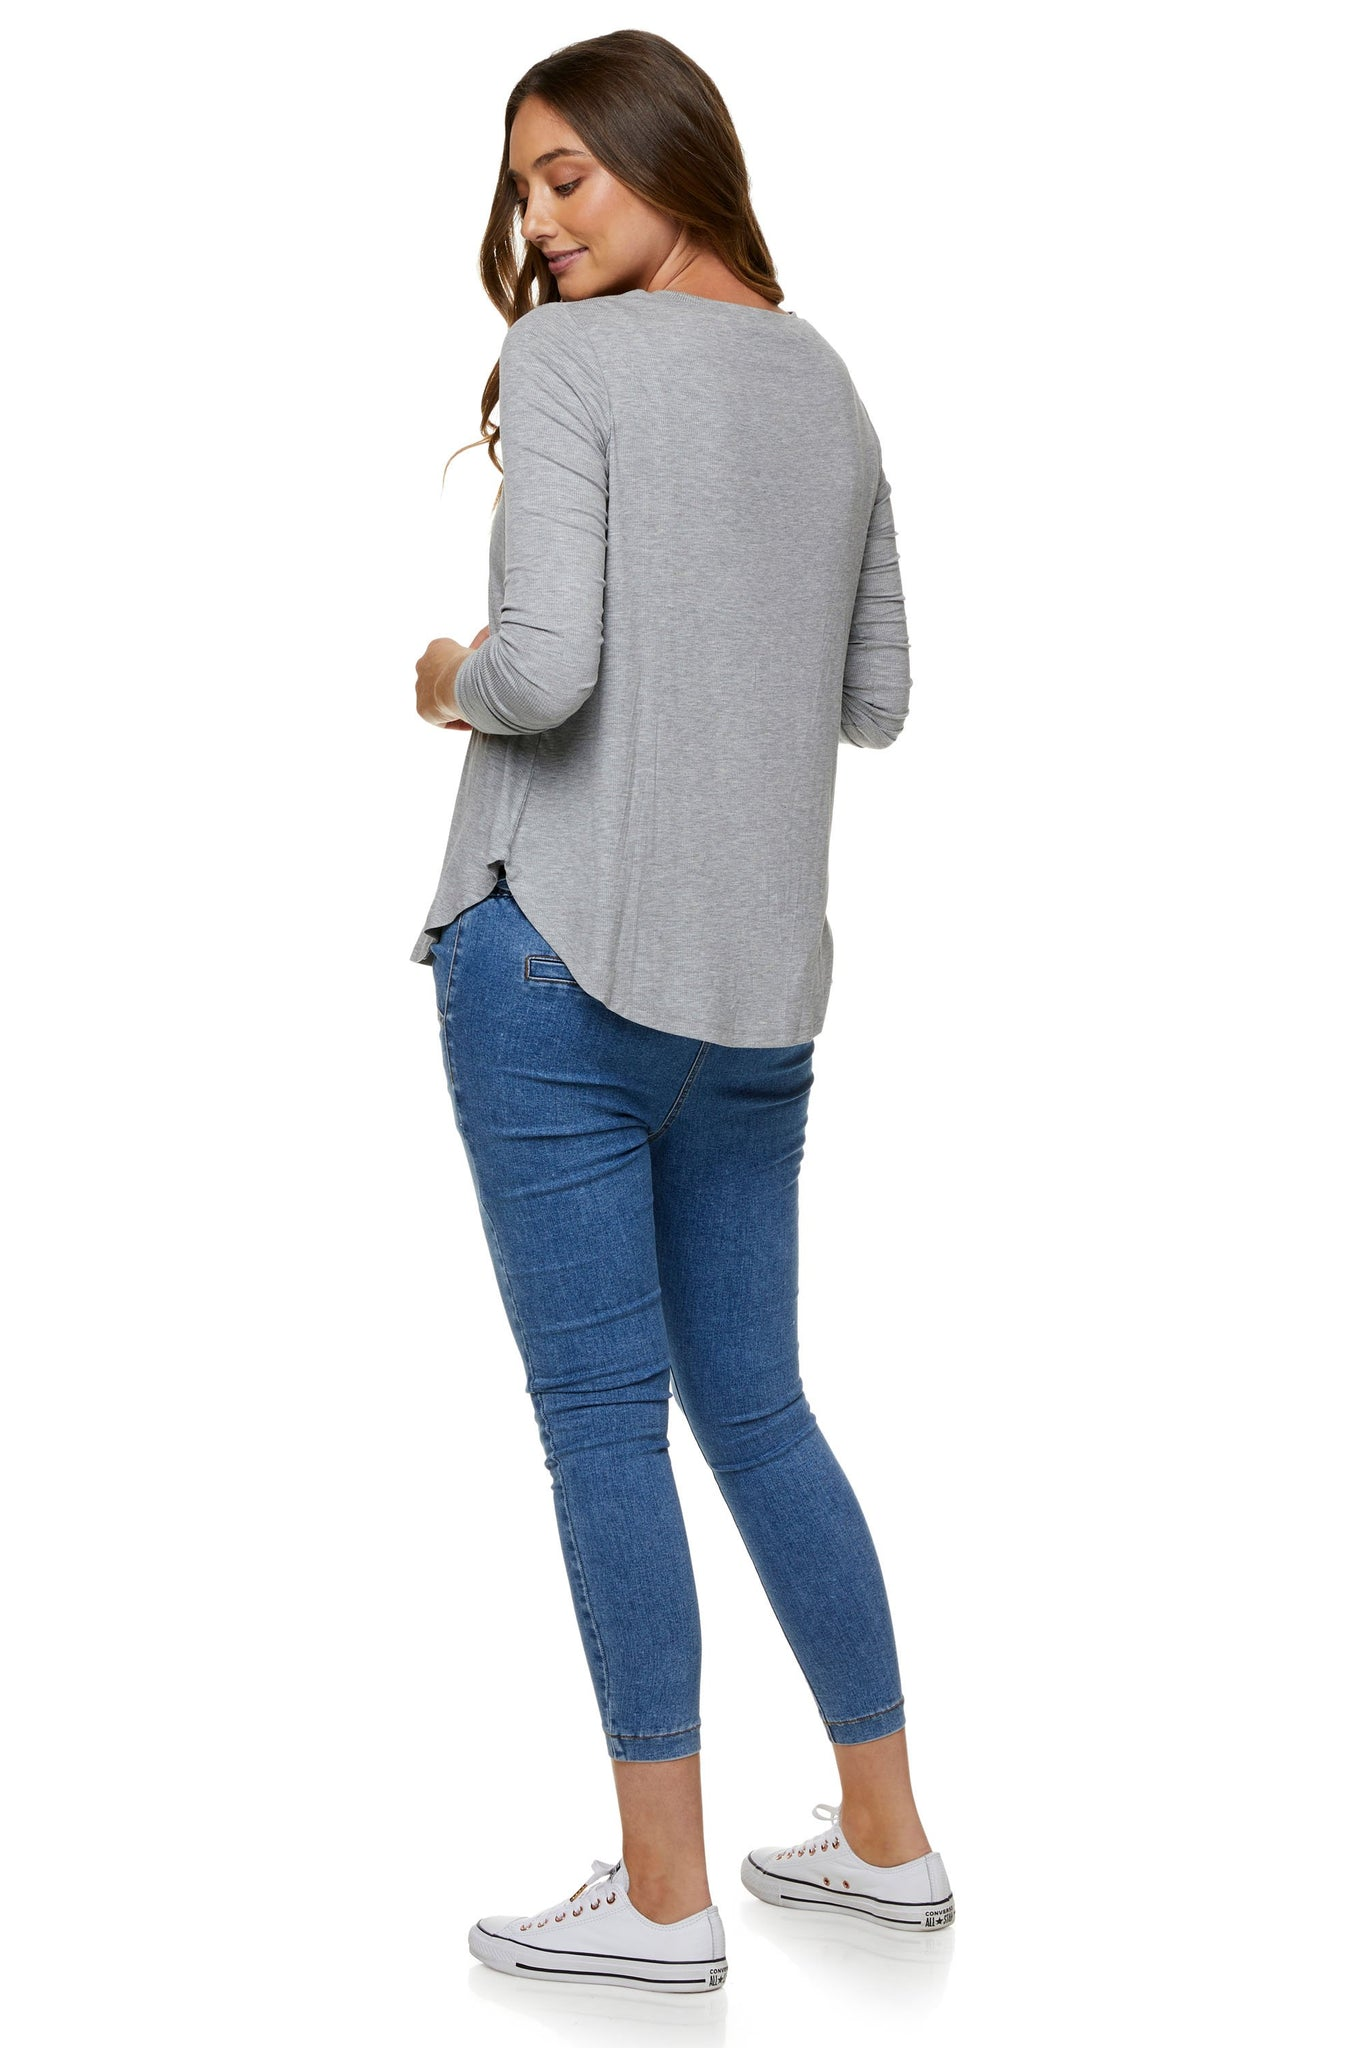 Grey nursing top - Maternity long sleeve top 8